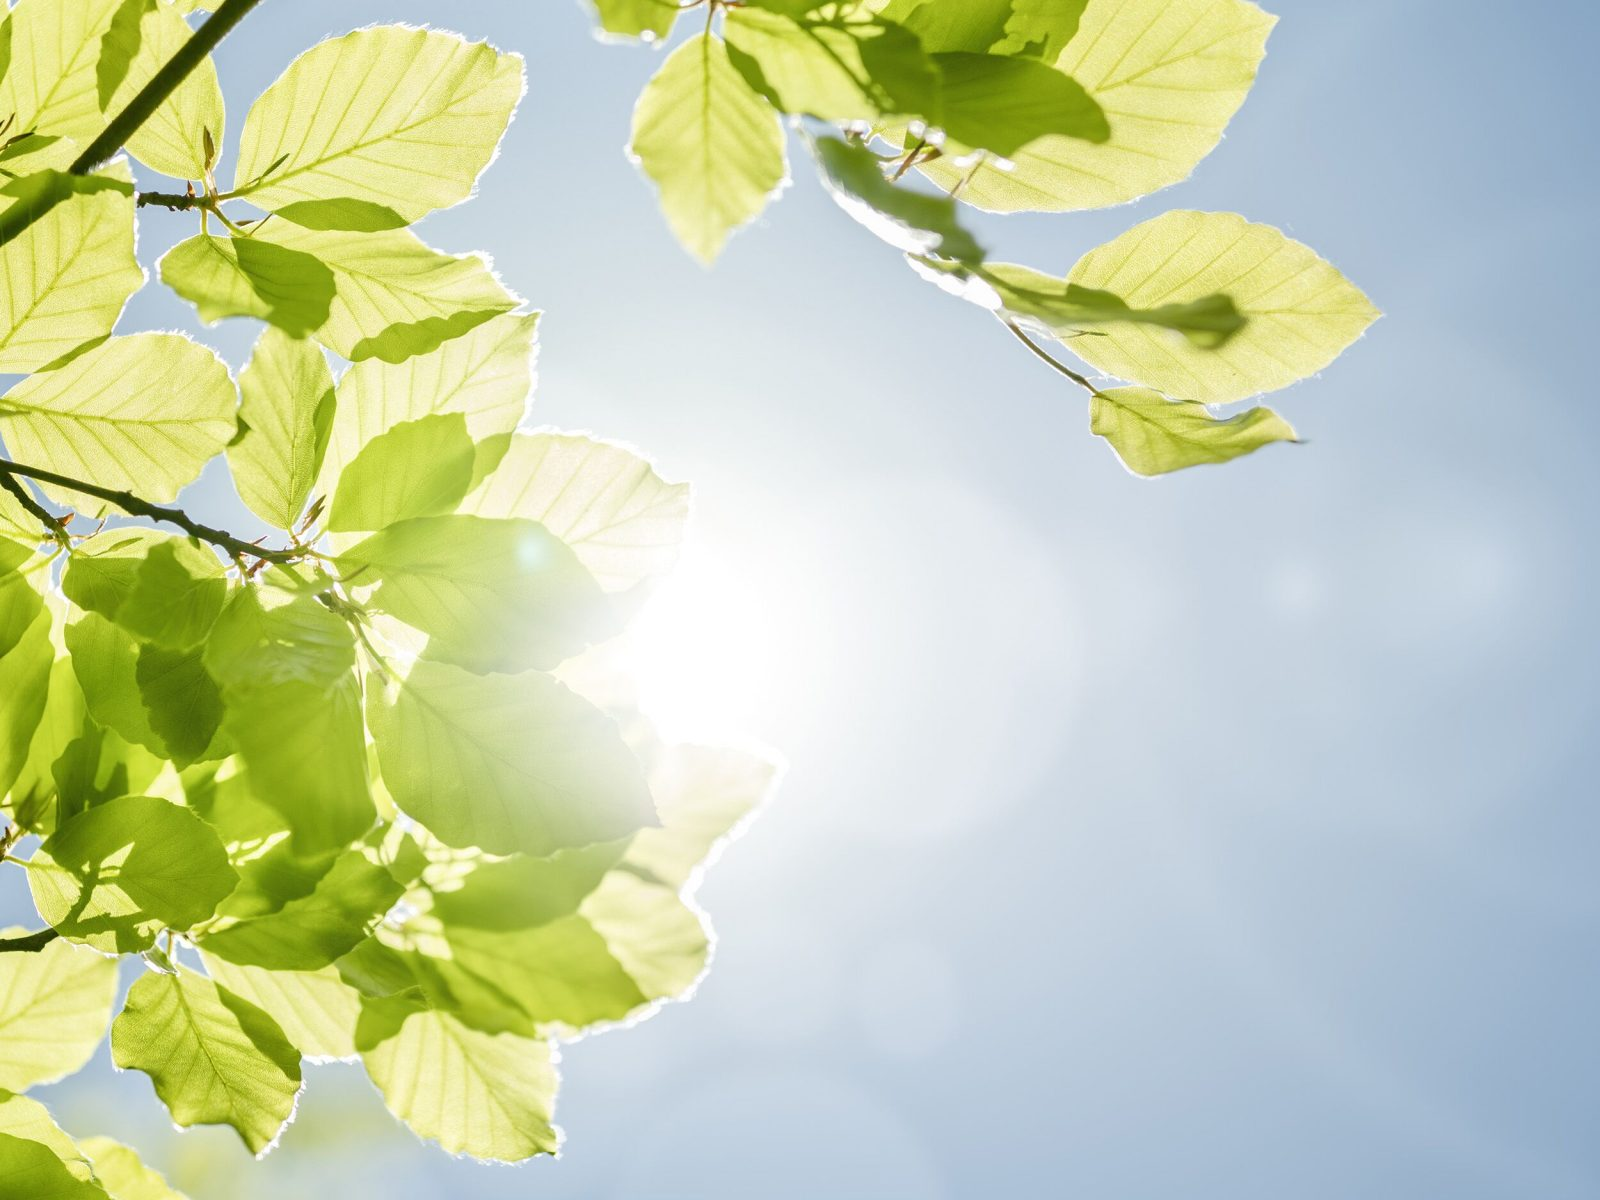 Leaves on branch with blue sky and a shaft of sunshine in background